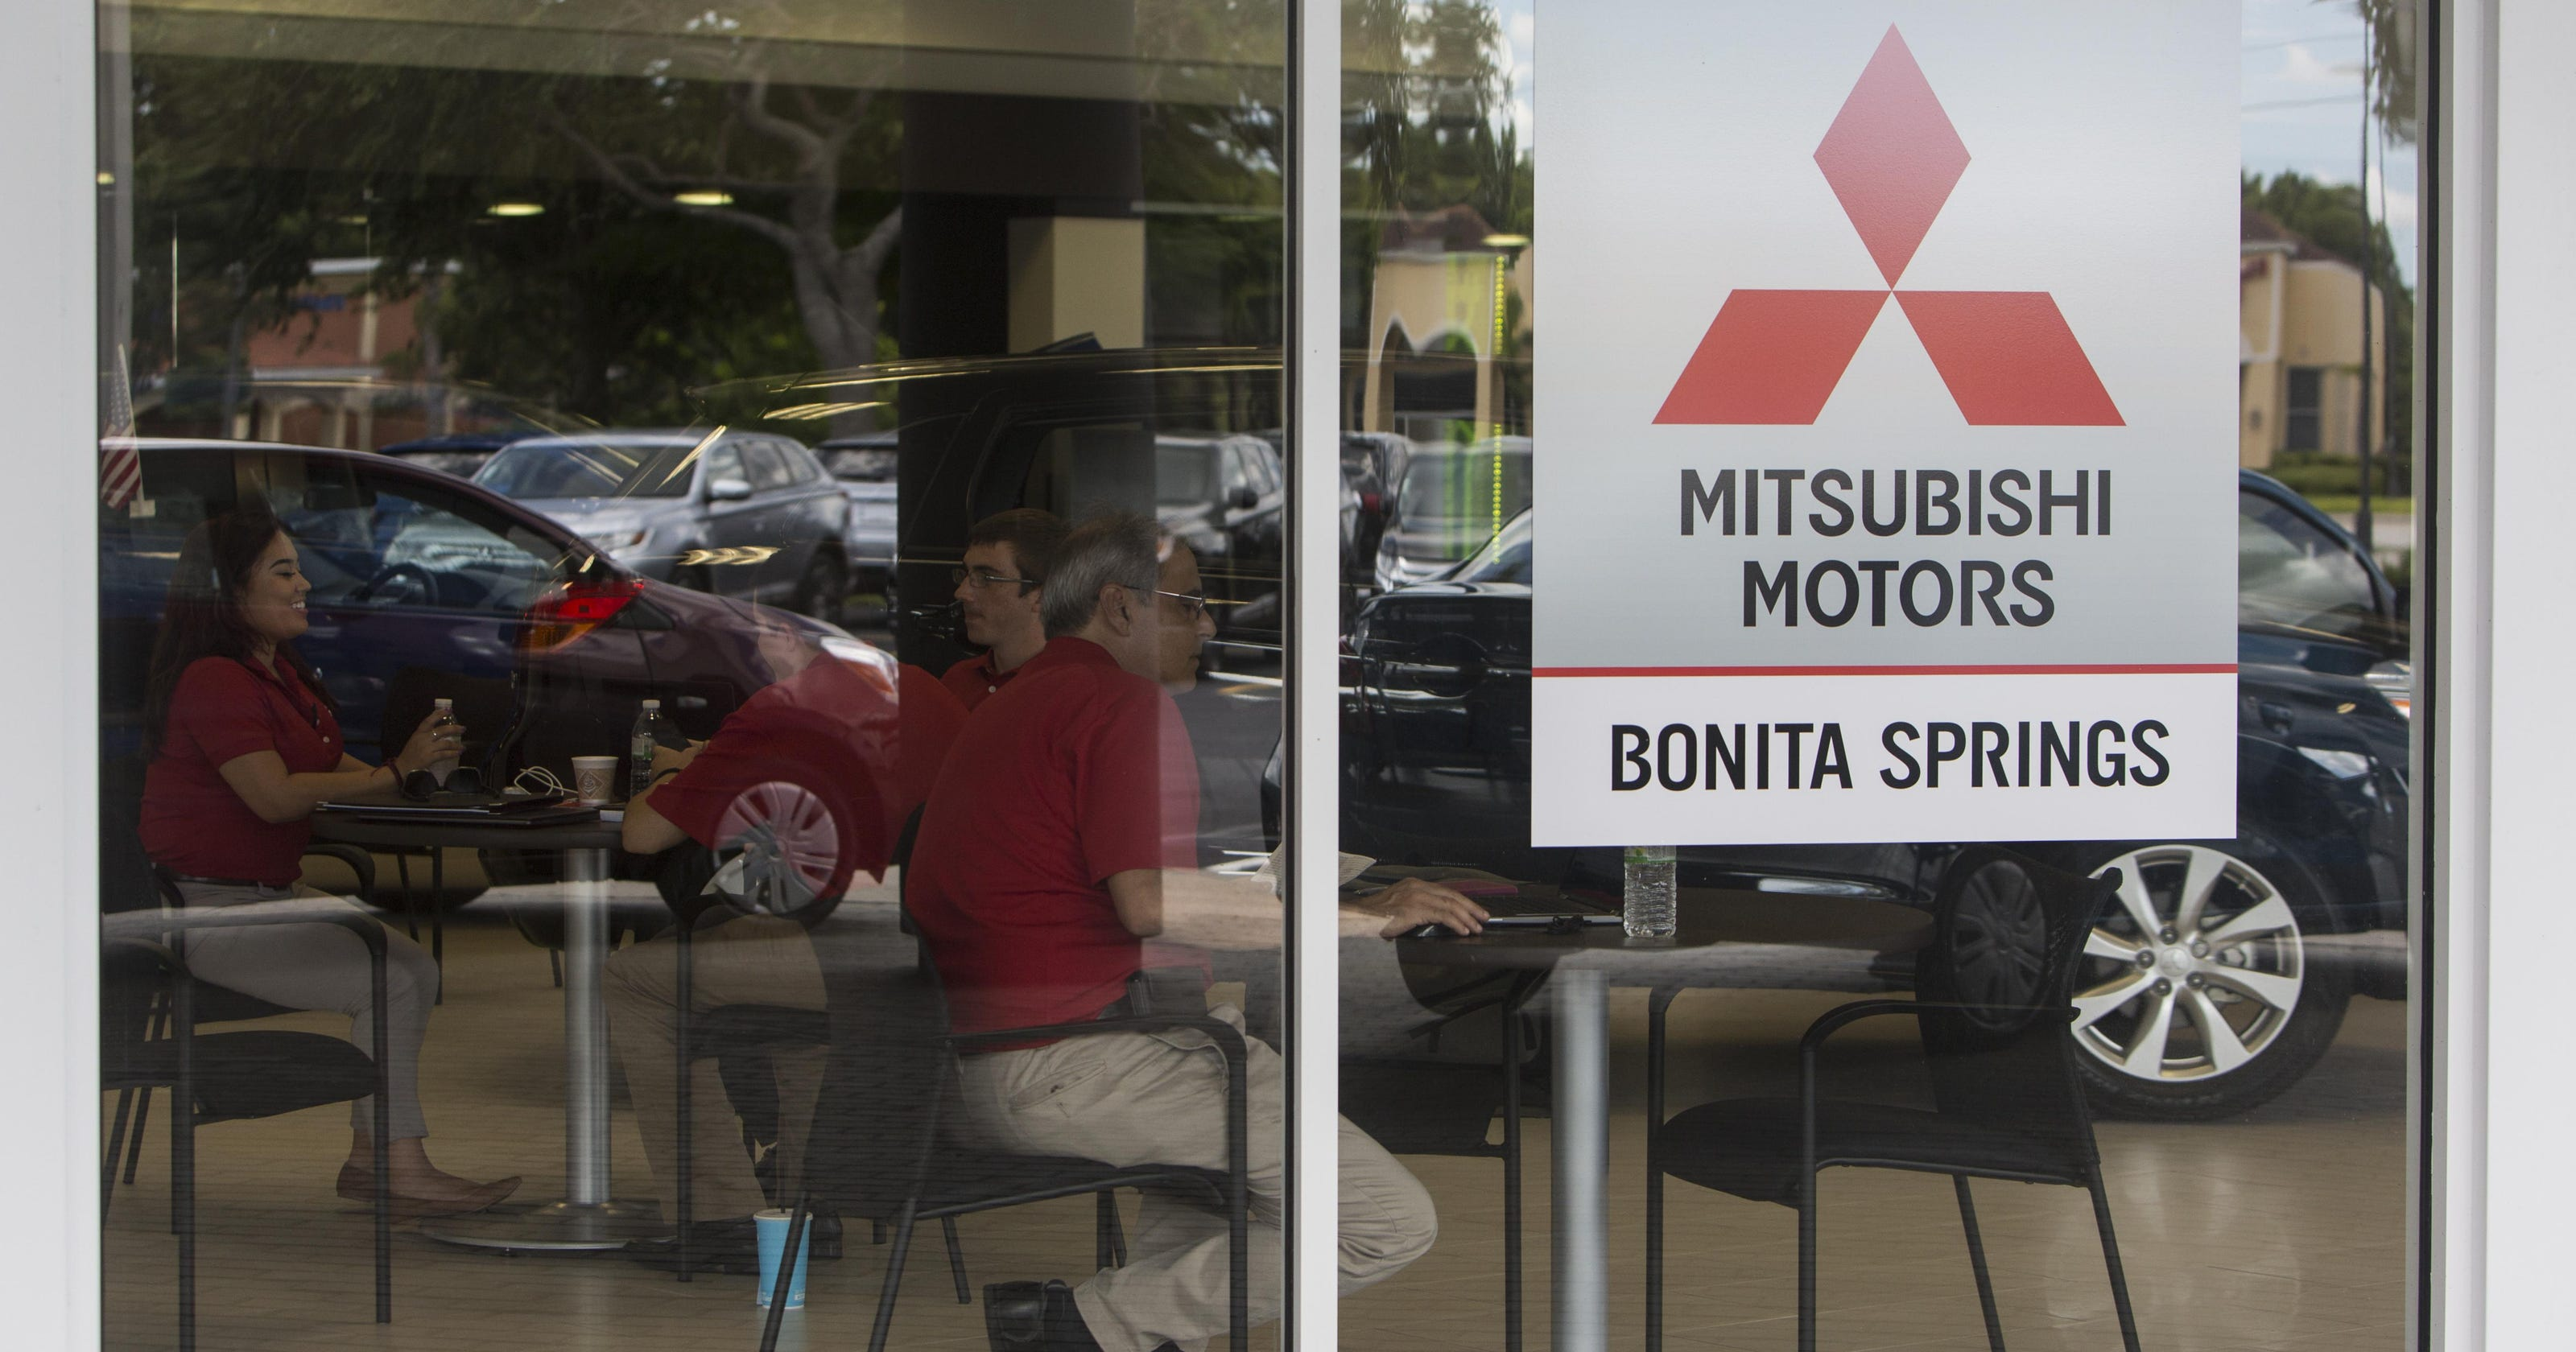 bonita springs mitsubishi owners acquire 2nd store in fort myers